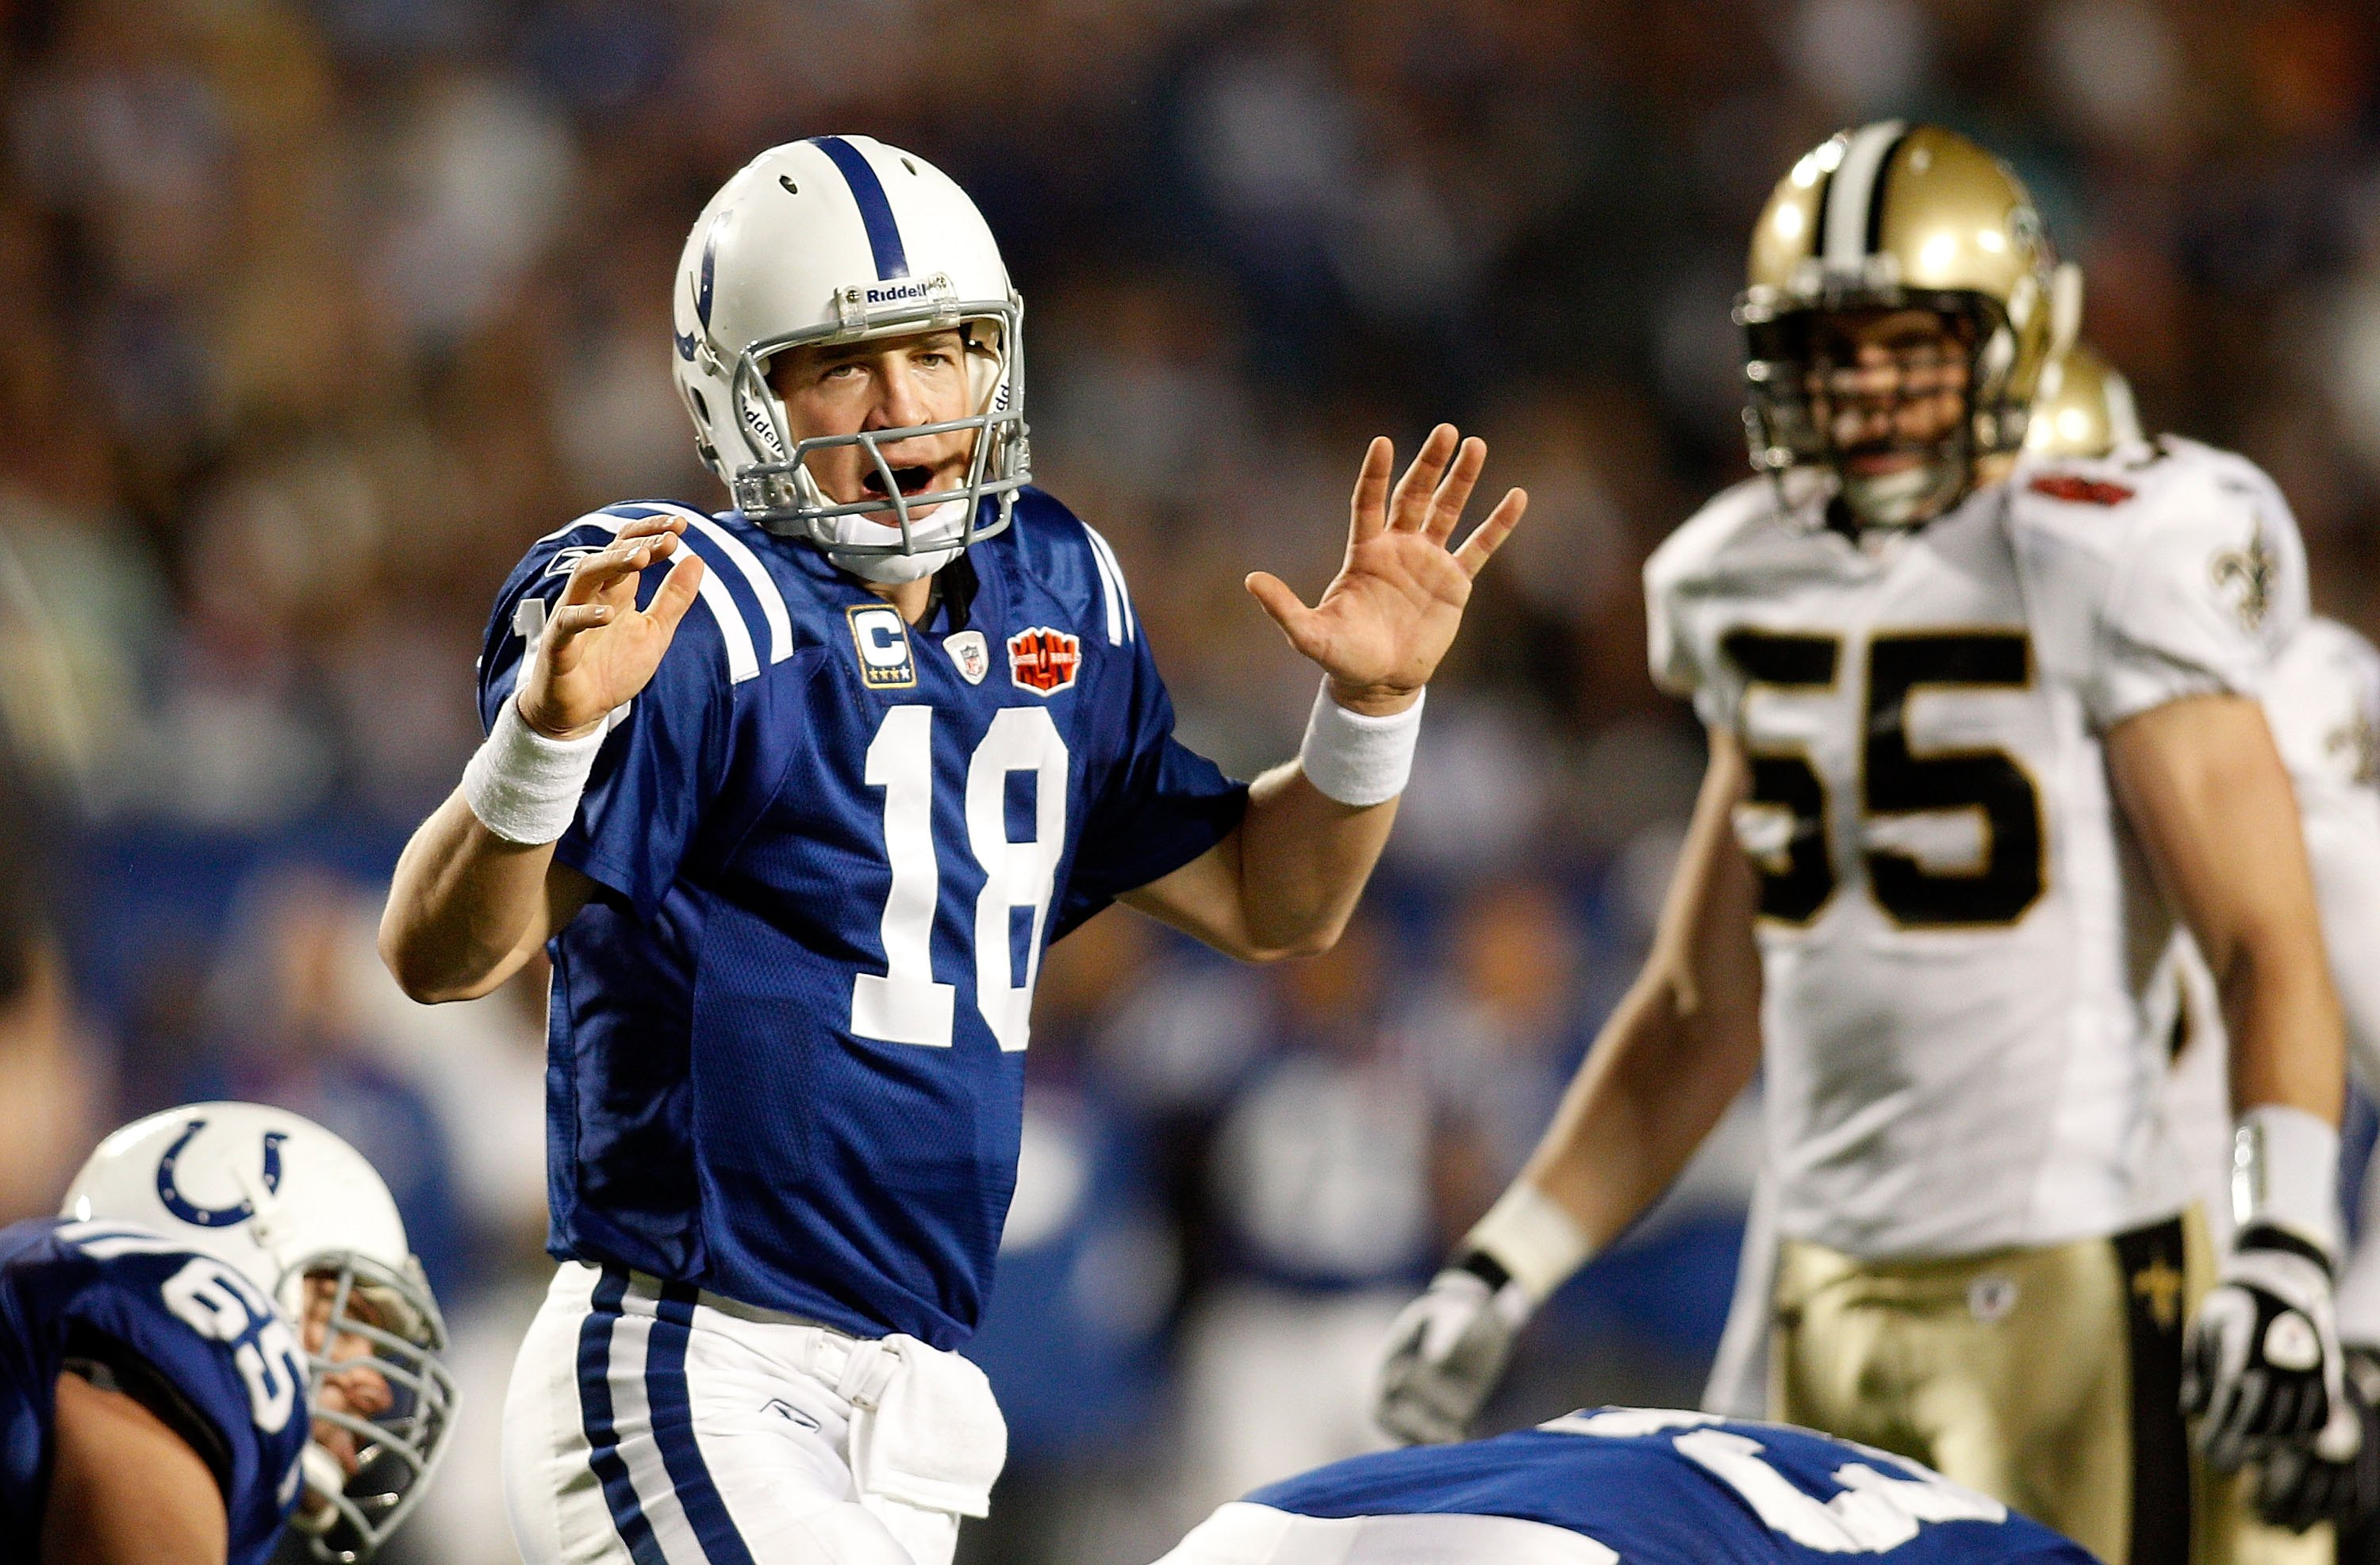 MIAMI GARDENS, FL - FEBRUARY 07:  Quarterback Peyton Manning #18 of the Indianapolis Colts calls a play against the New Orleans Saints during Super Bowl XLIV on February 7, 2010 at Sun Life Stadium in Miami Gardens, Florida.  (Photo by Chris Graythen/Gett